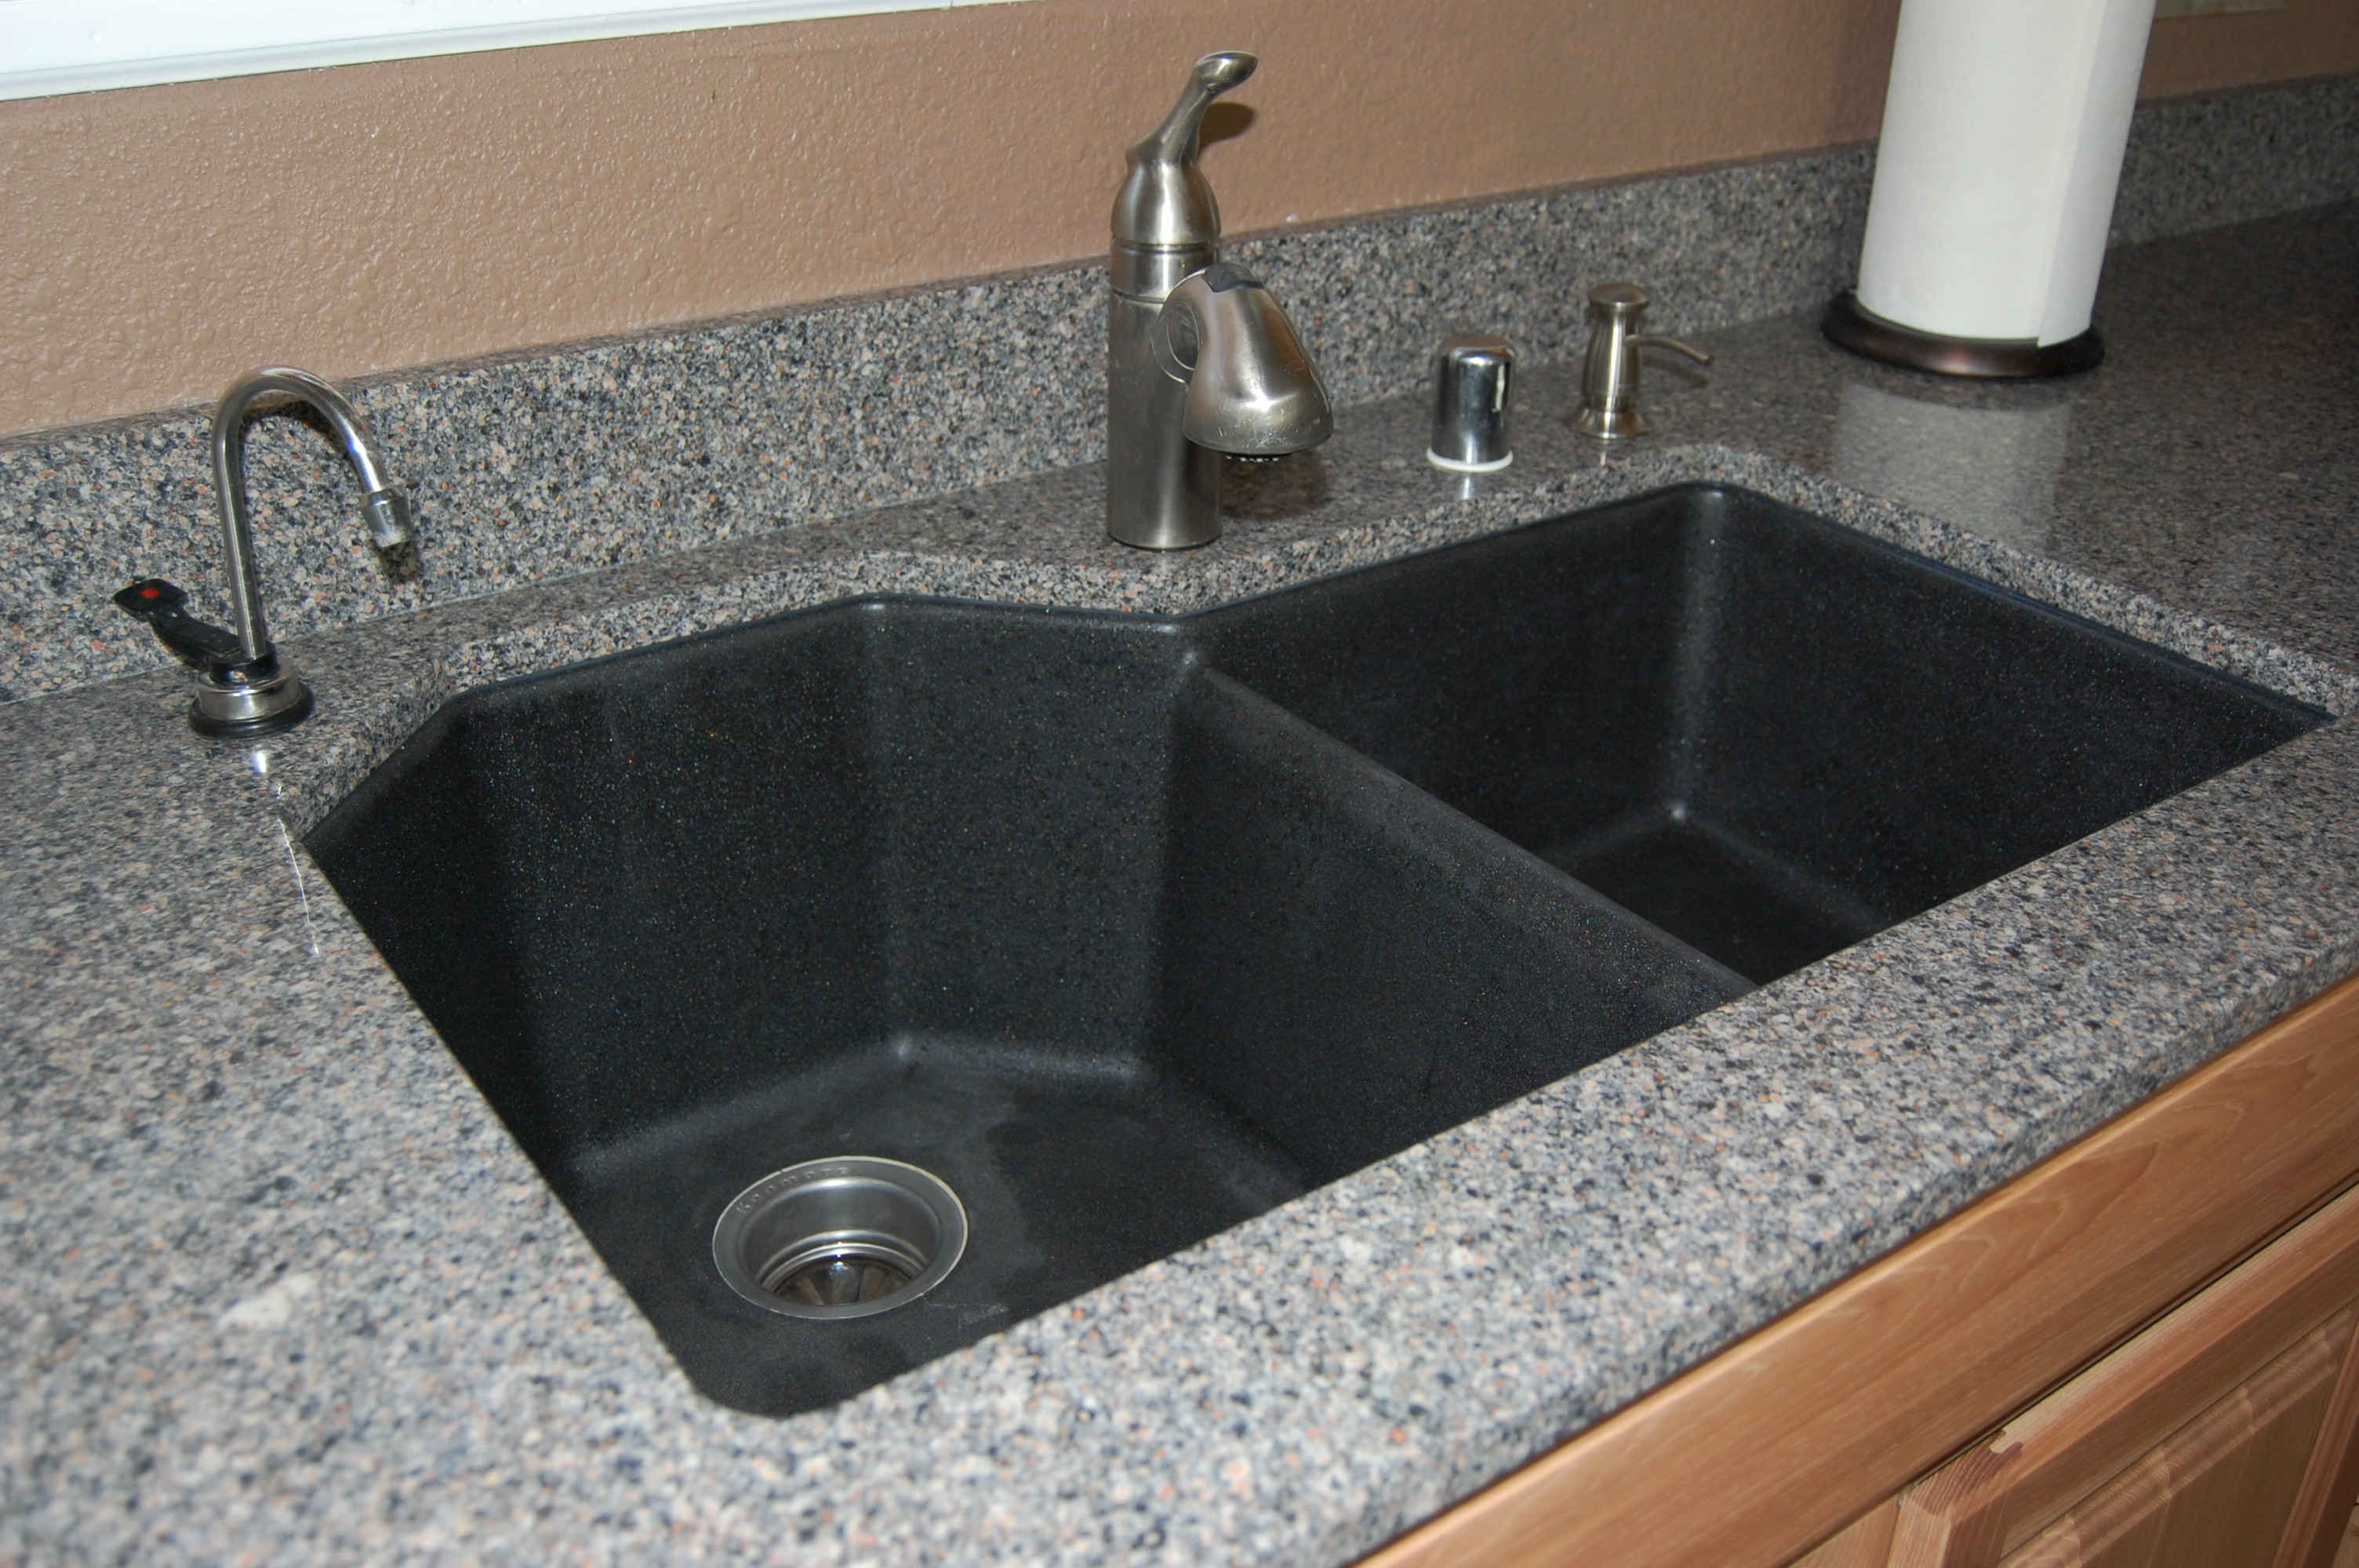 Undermount sink : jennheffer